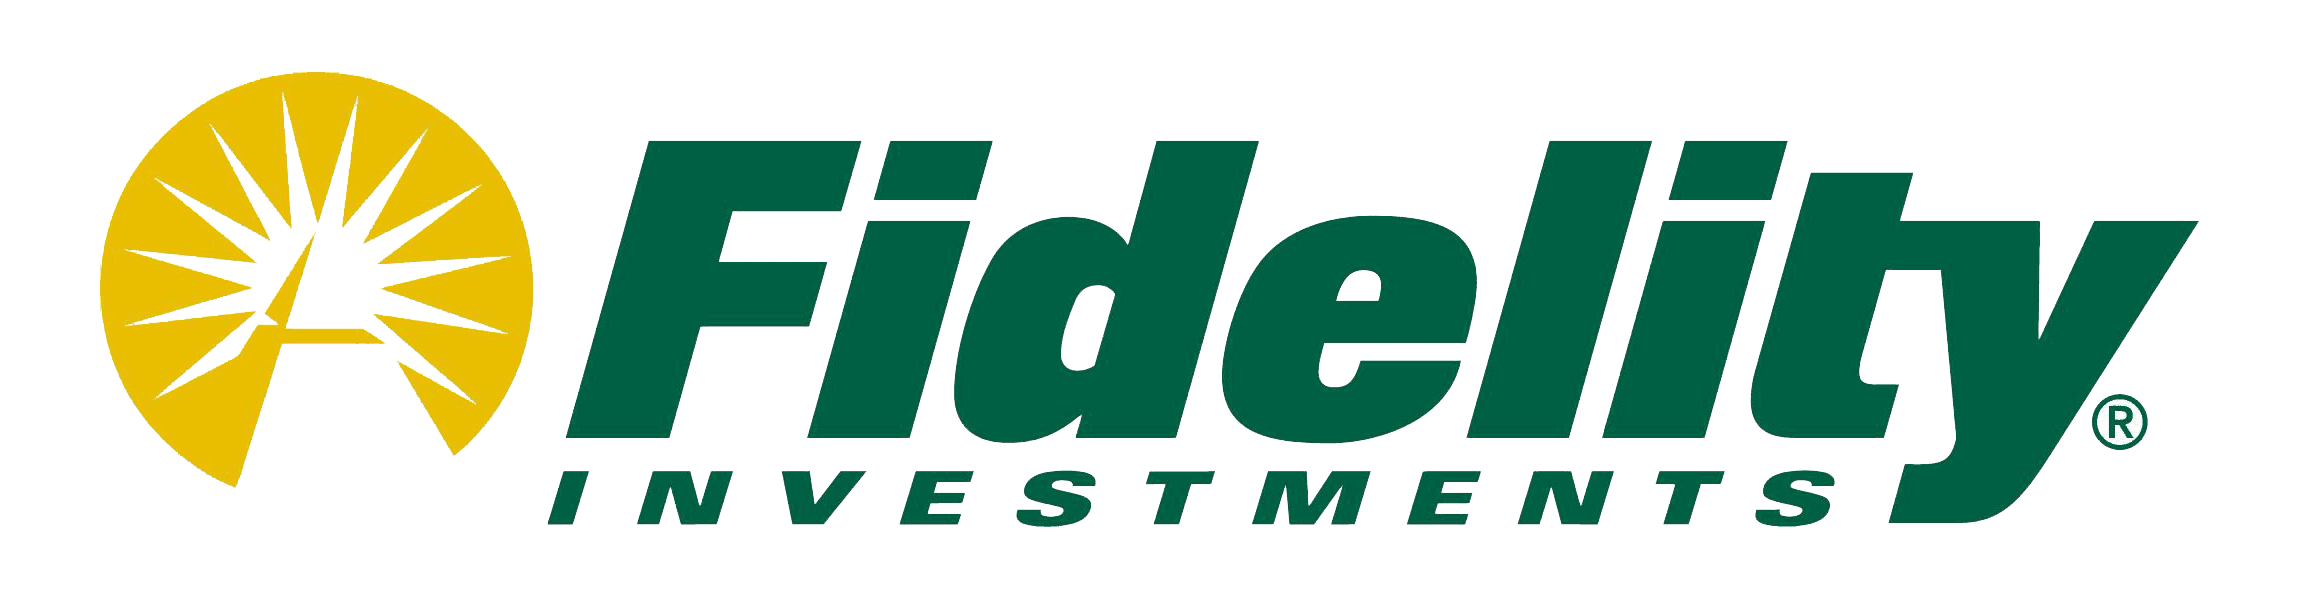 fidelity investments logo stock brokers